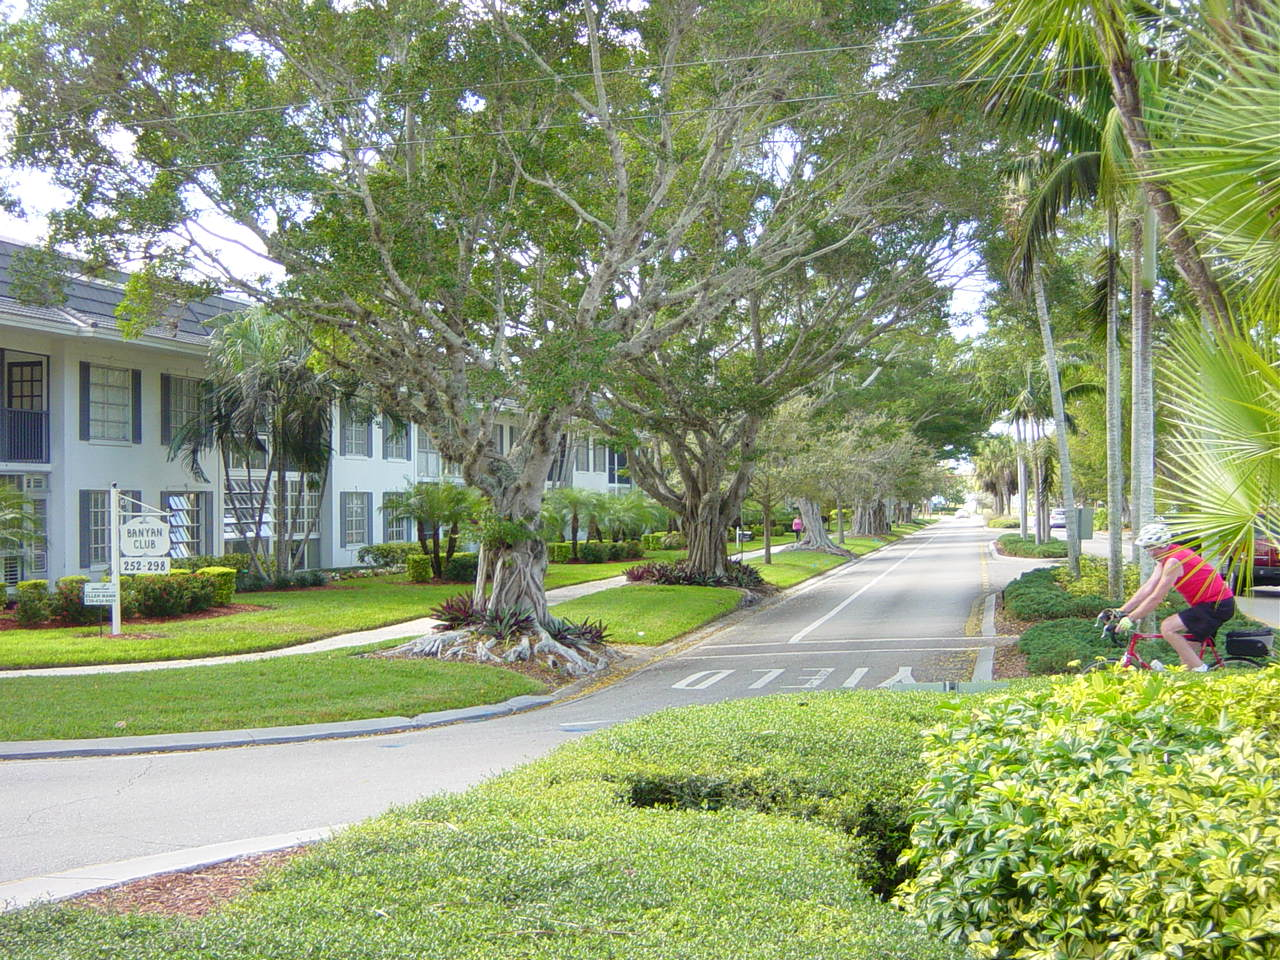 Naples Florida tree lined streets lead to the lovely beach